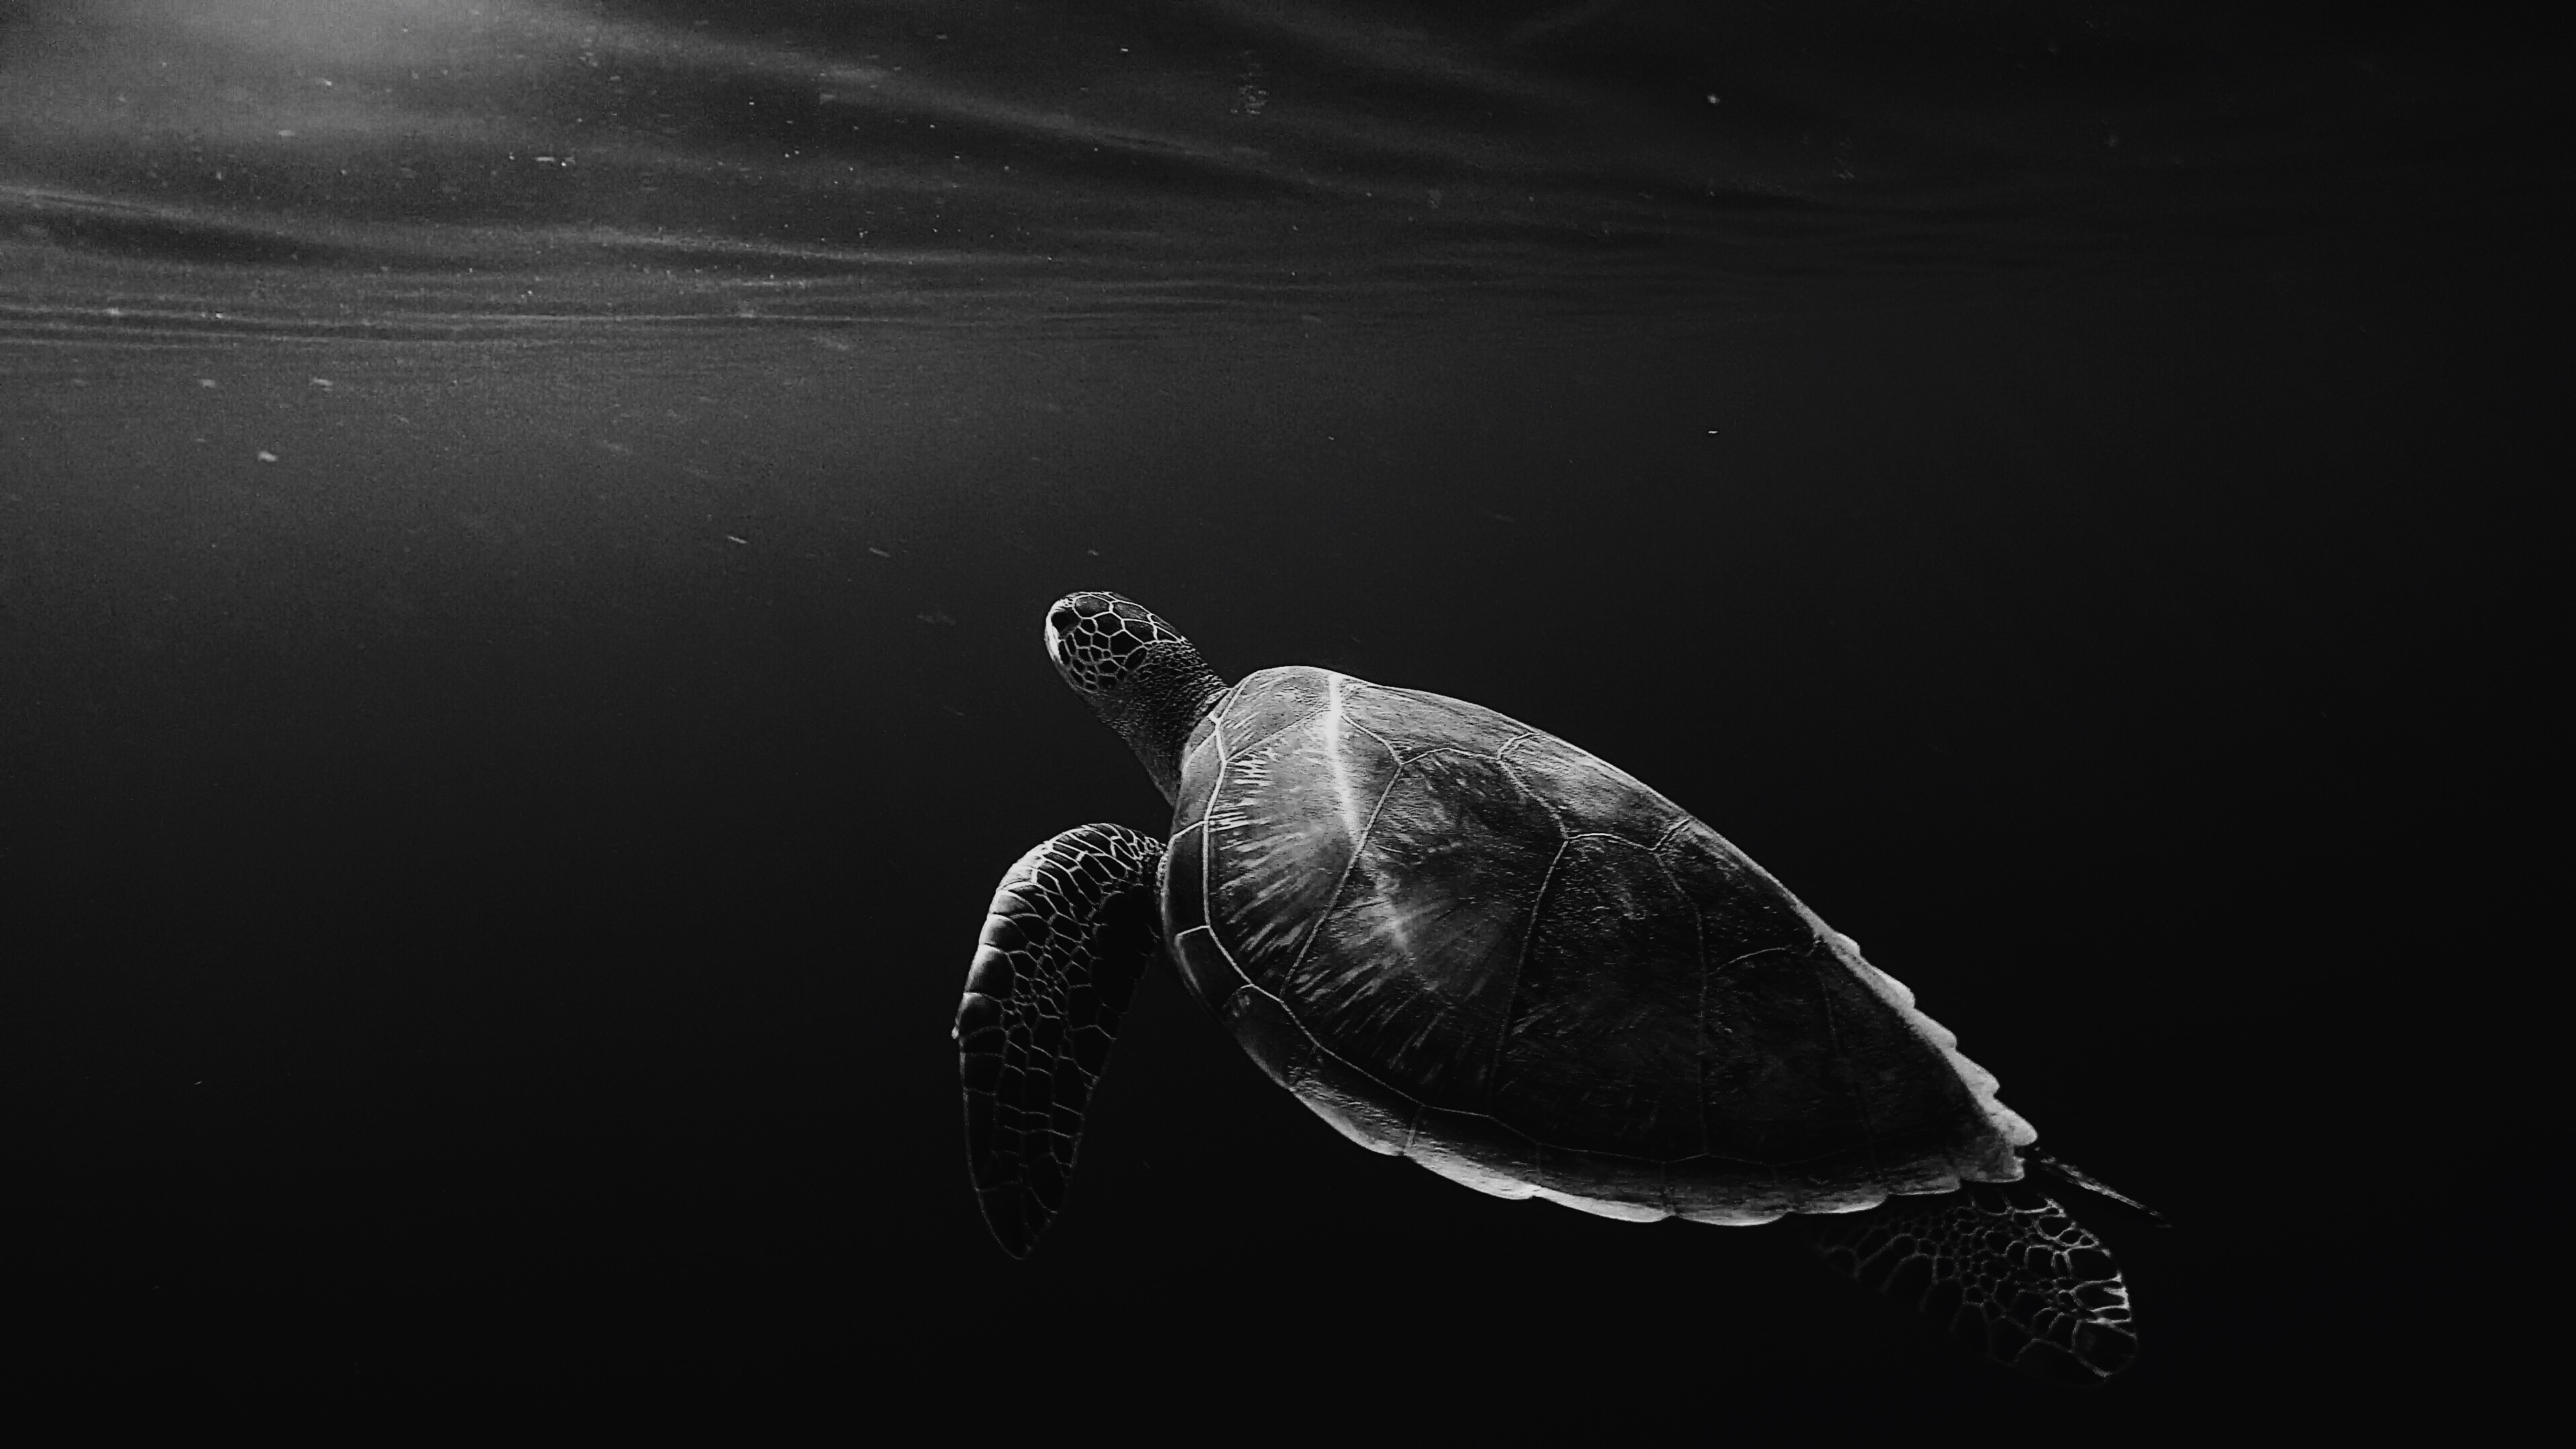 Black and white underwater shot of lone turtle swimming in sea